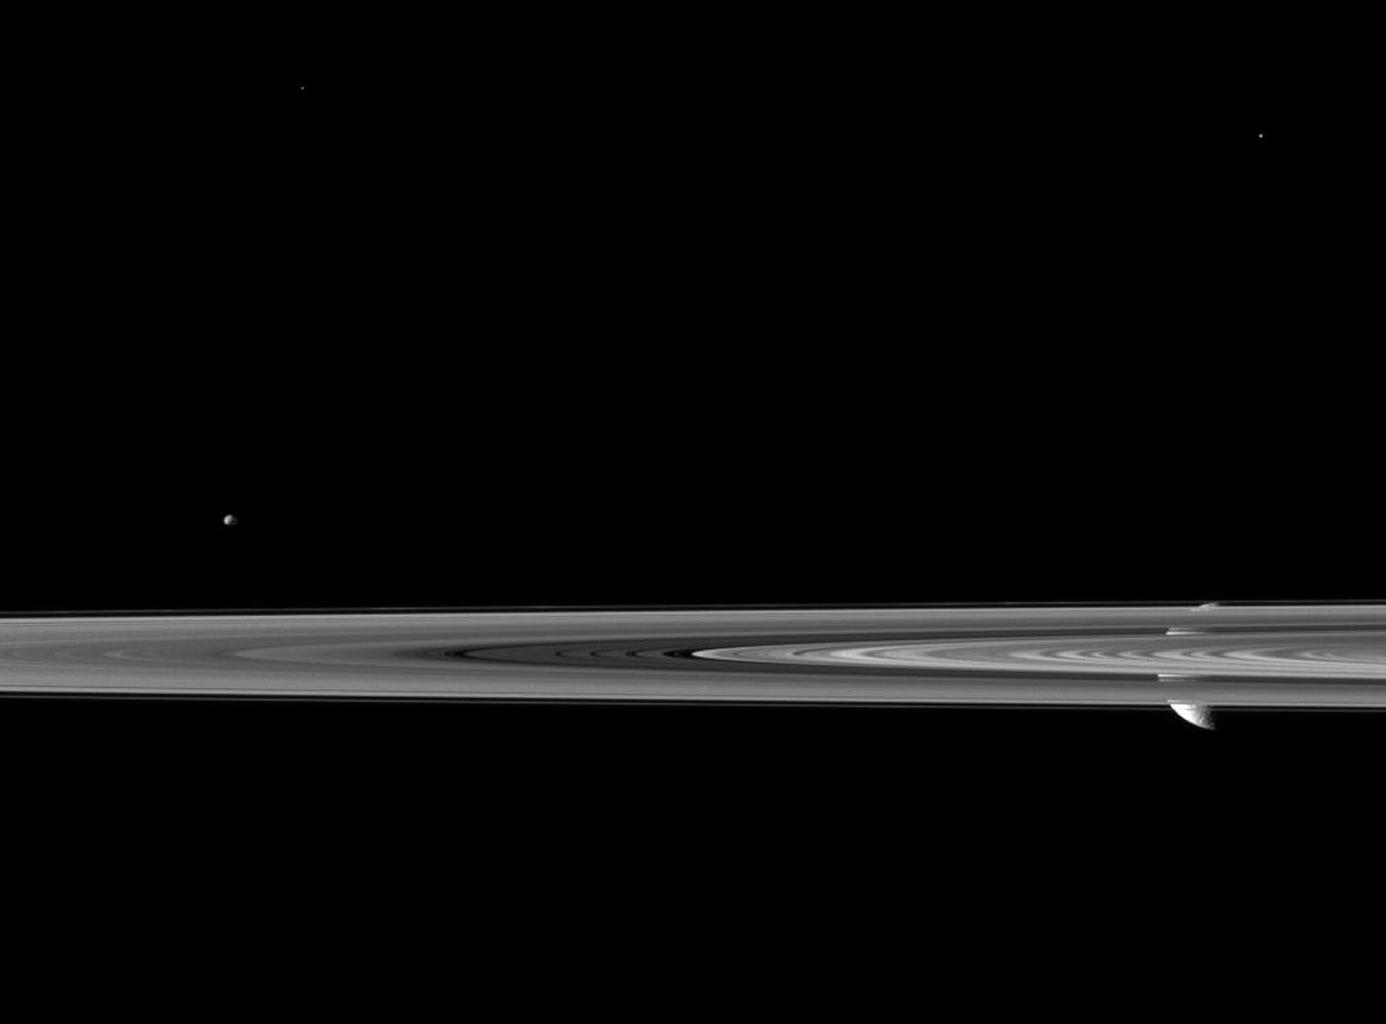 Saturn's second largest moon Rhea pops in and out of view behind the planet's rings in this image from the Cassini spacecraft, which includes the smaller moon Epimetheus.